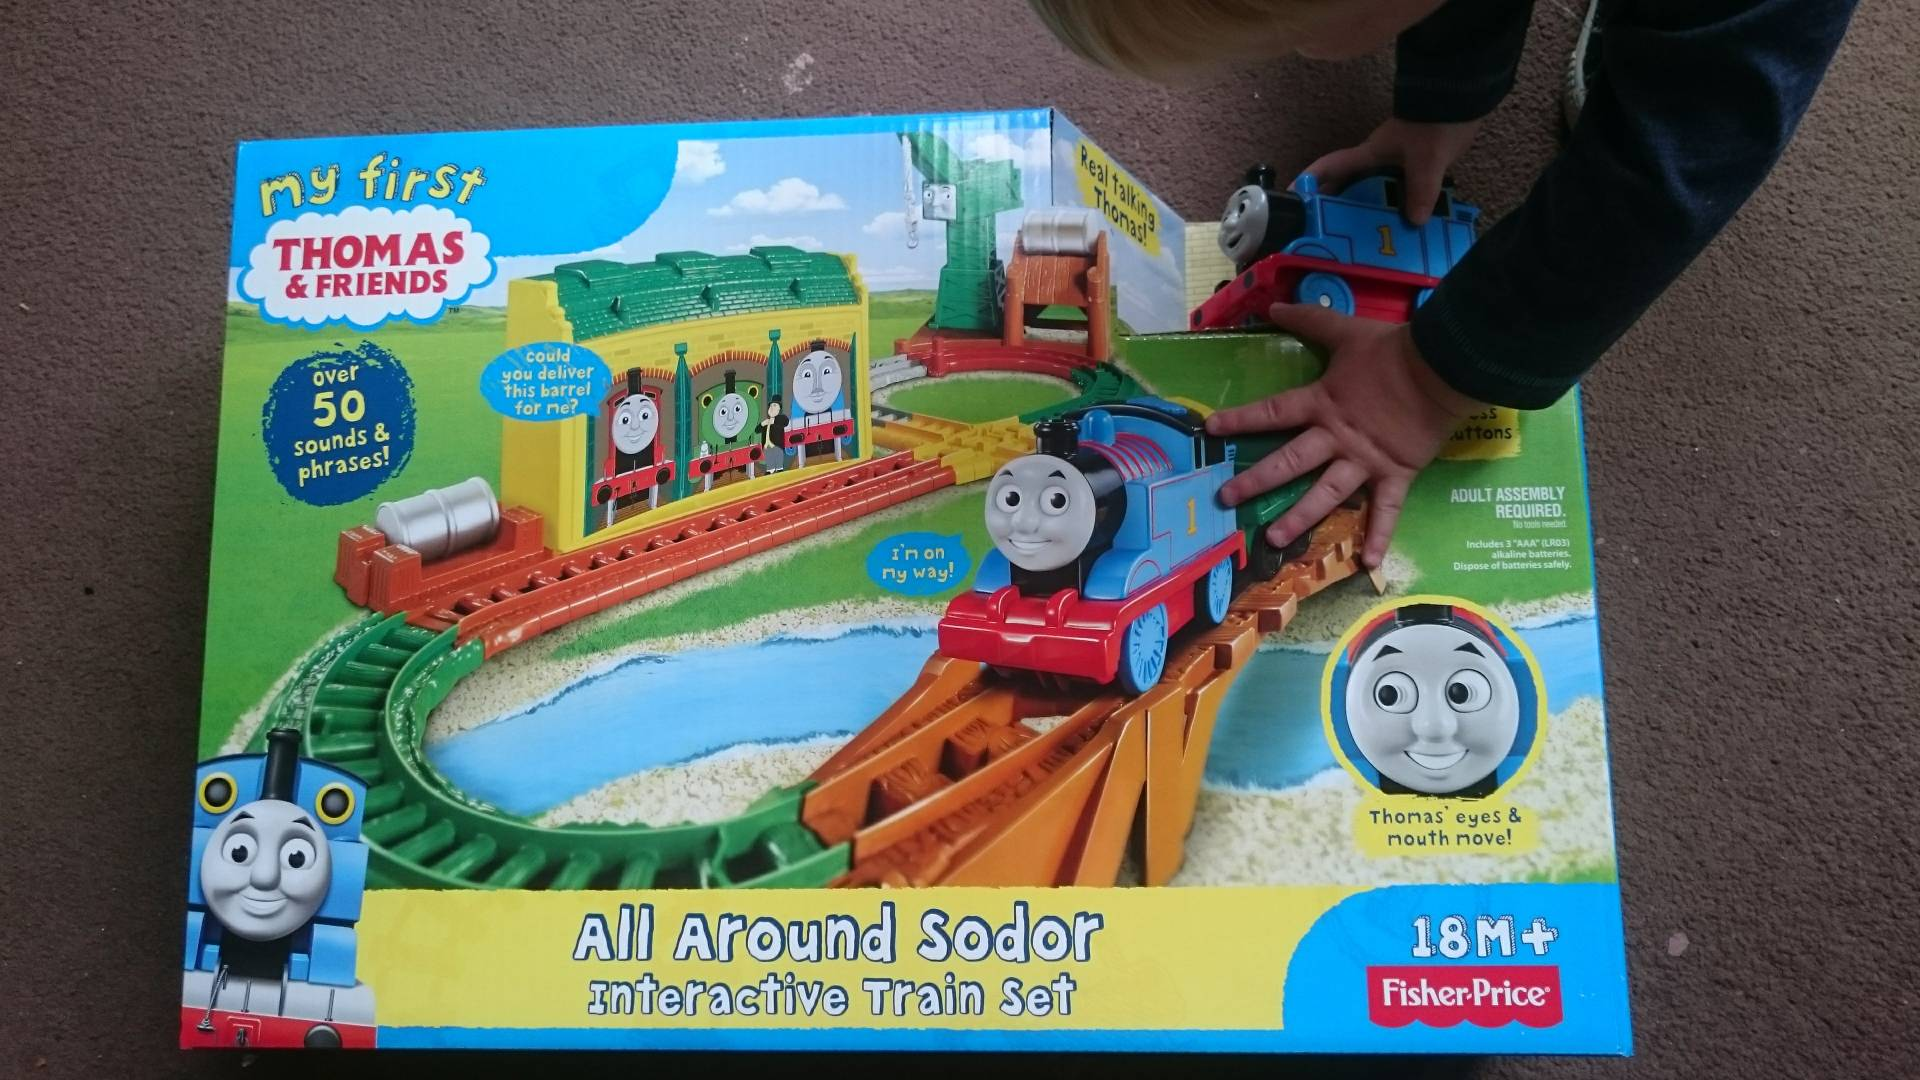 Thomas the tank engine fever hits! This is a gift worth buying, it keeps him endlessly entertained